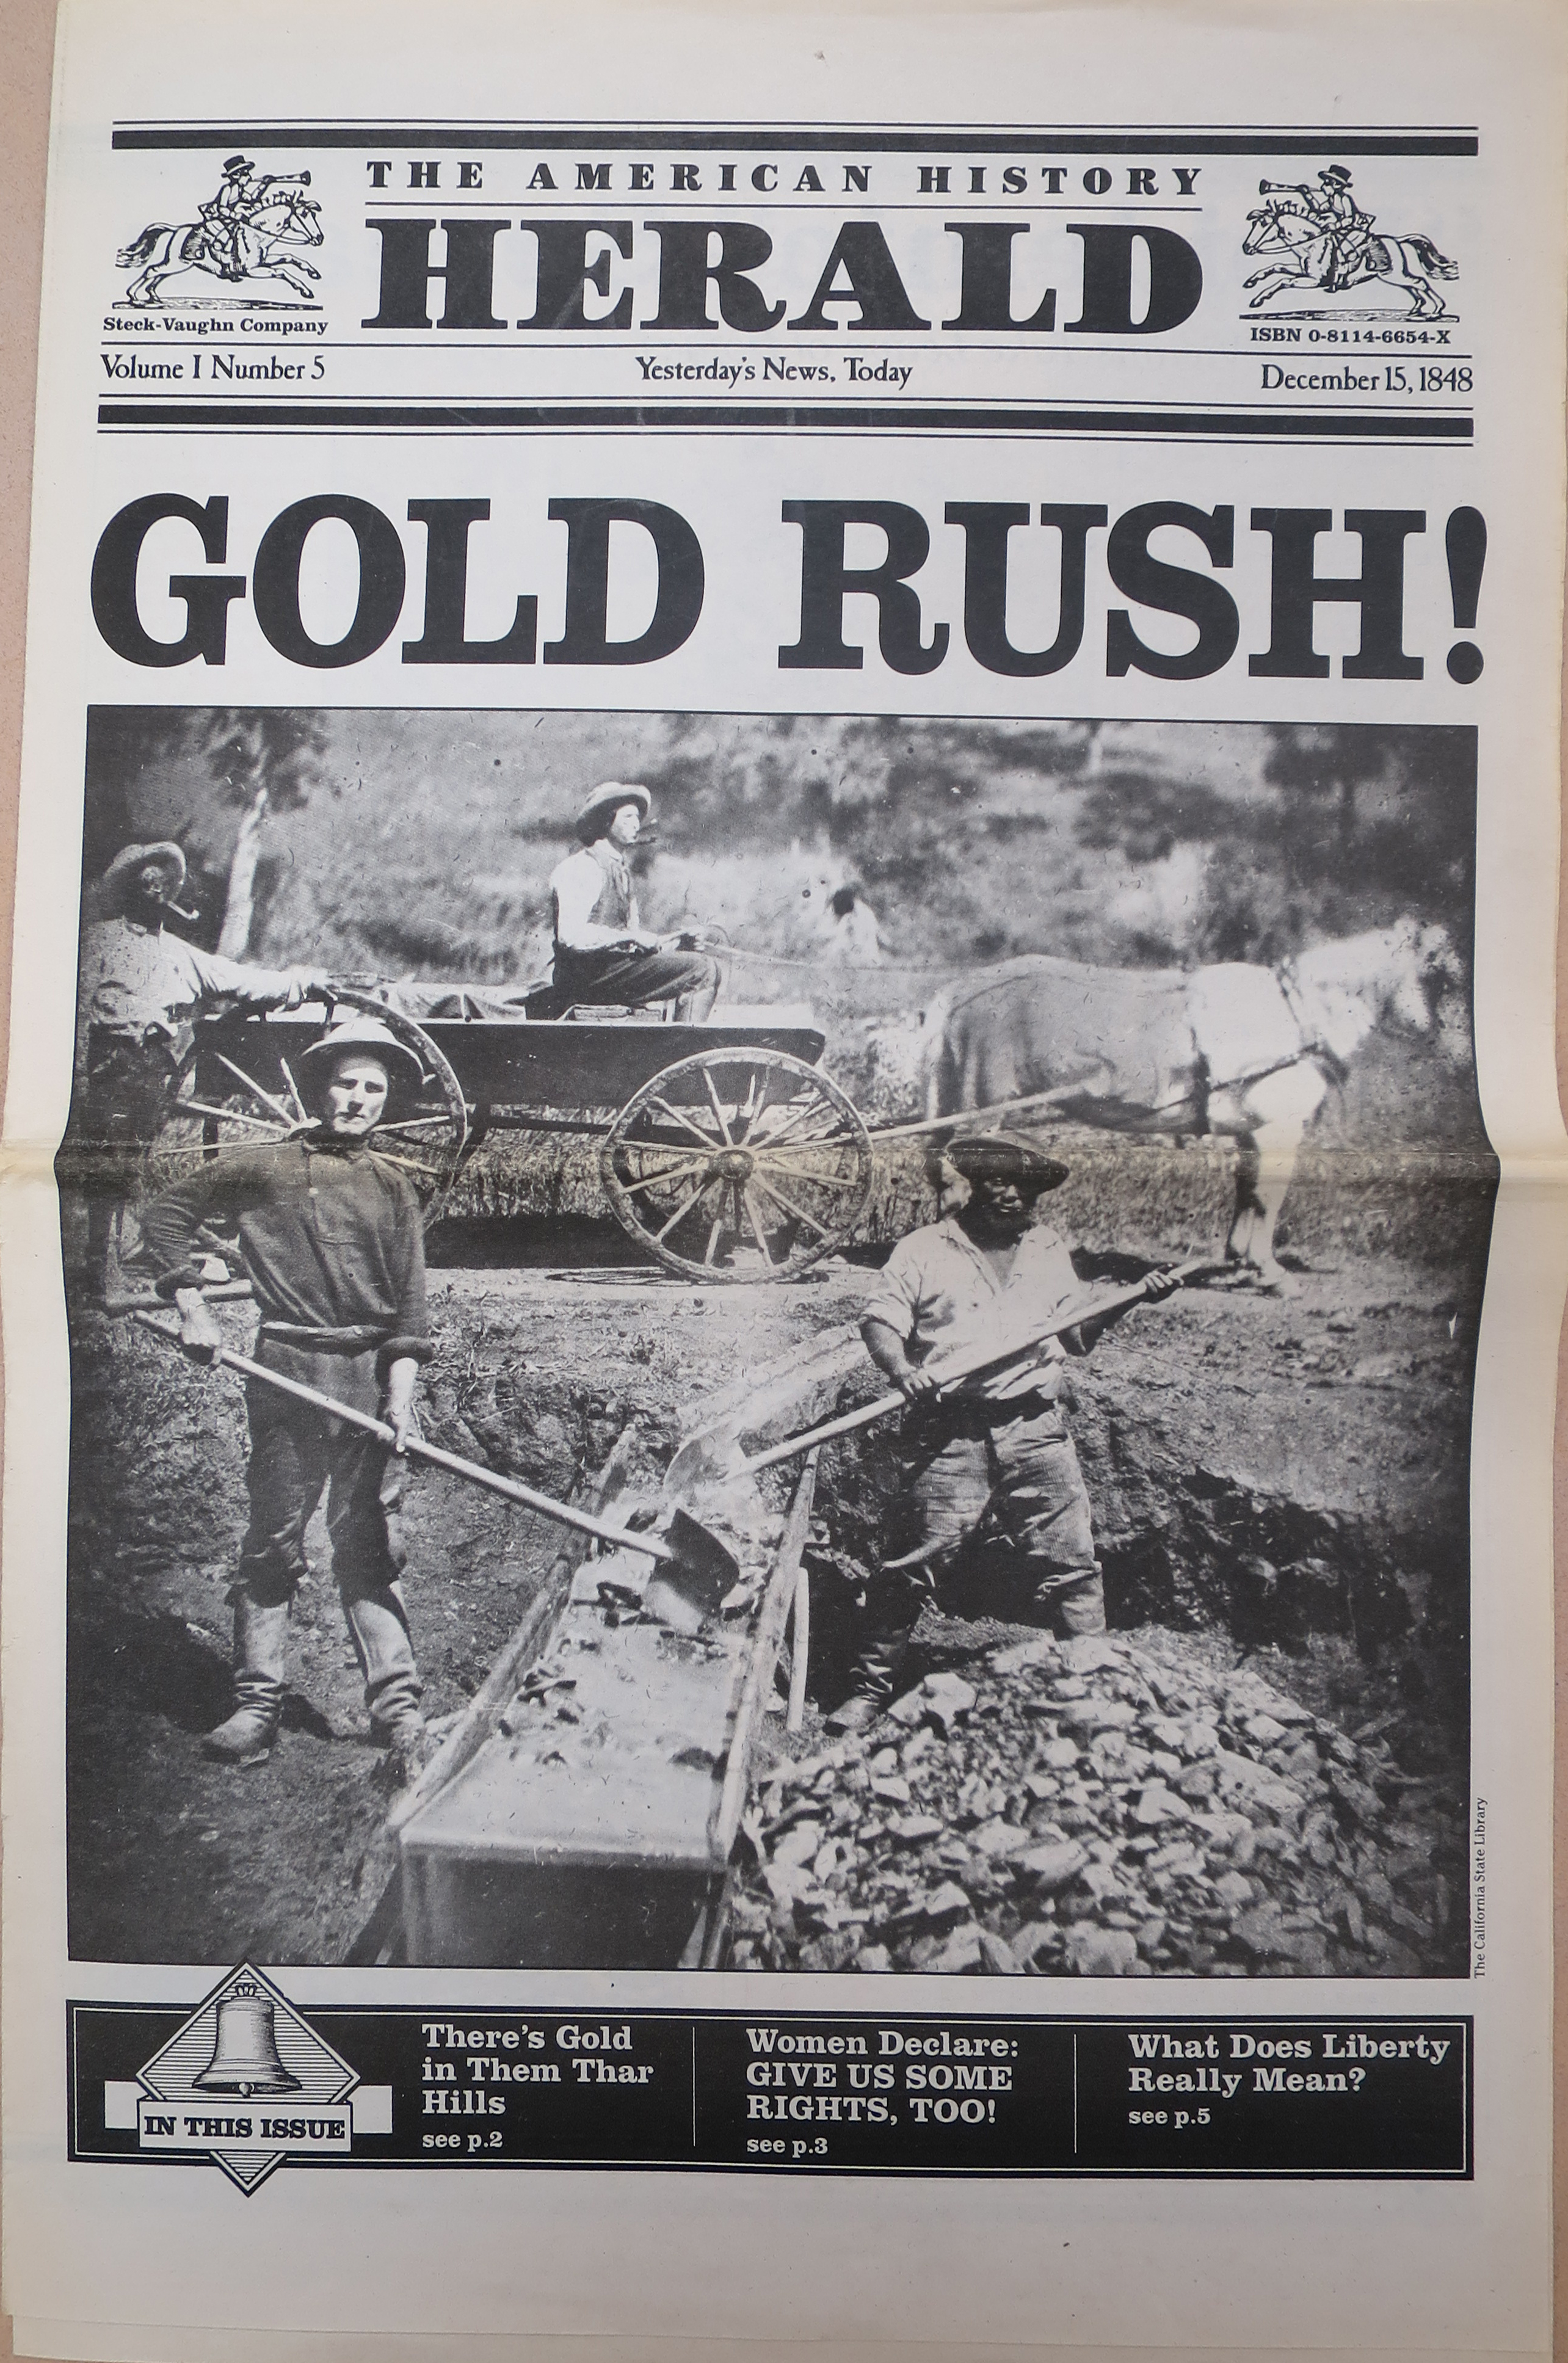 australian gold rush essay example Gold was discoverd in 1851and led to the victorian gold rush during this era  islands to the north and northeast of australia, australian  example, during the.